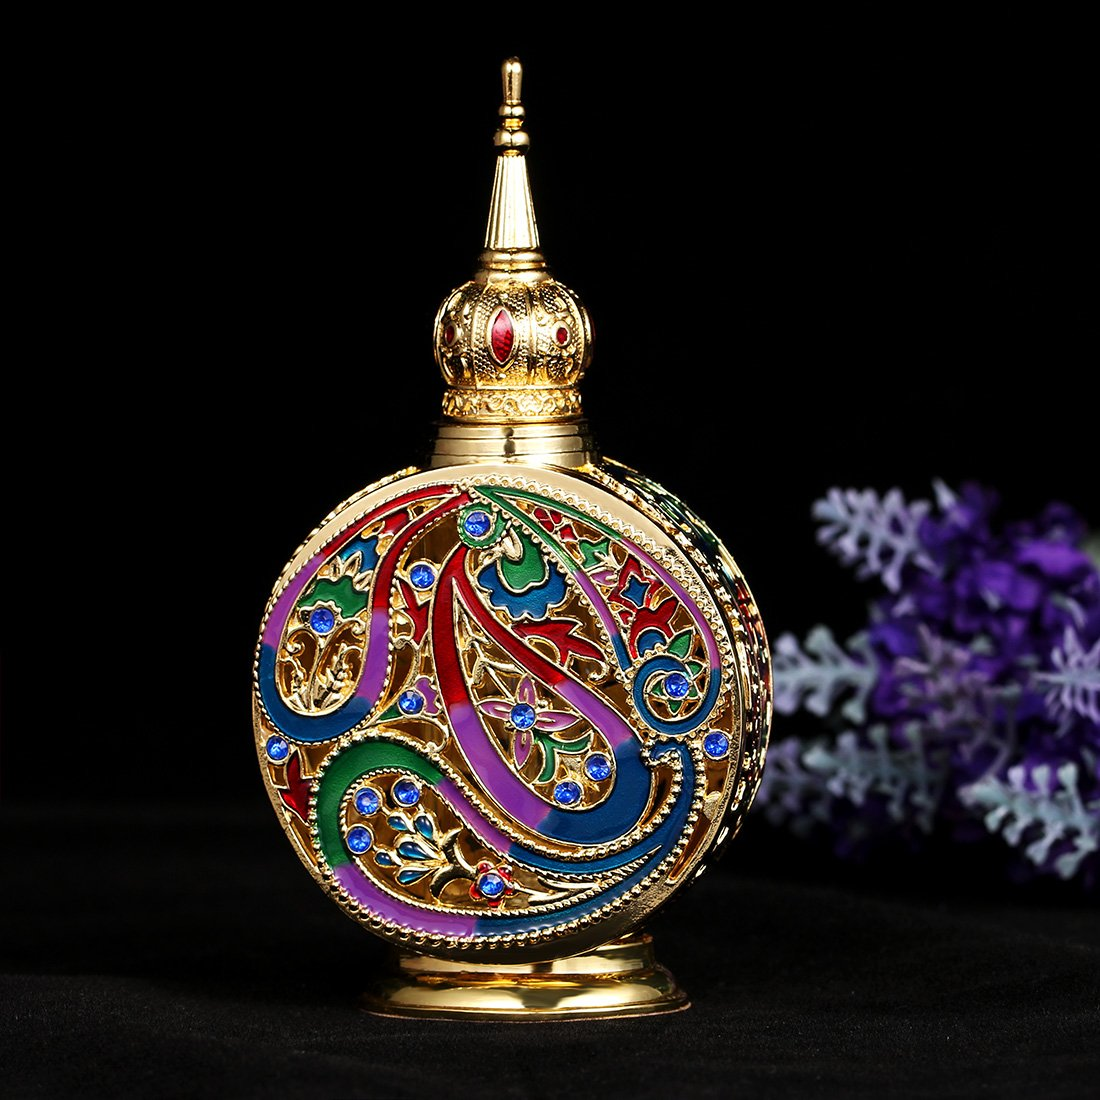 H&D Vintage 18ml Empty Refillable Egyptian Style Enameled Metal and Glass Perfume Bottle 3